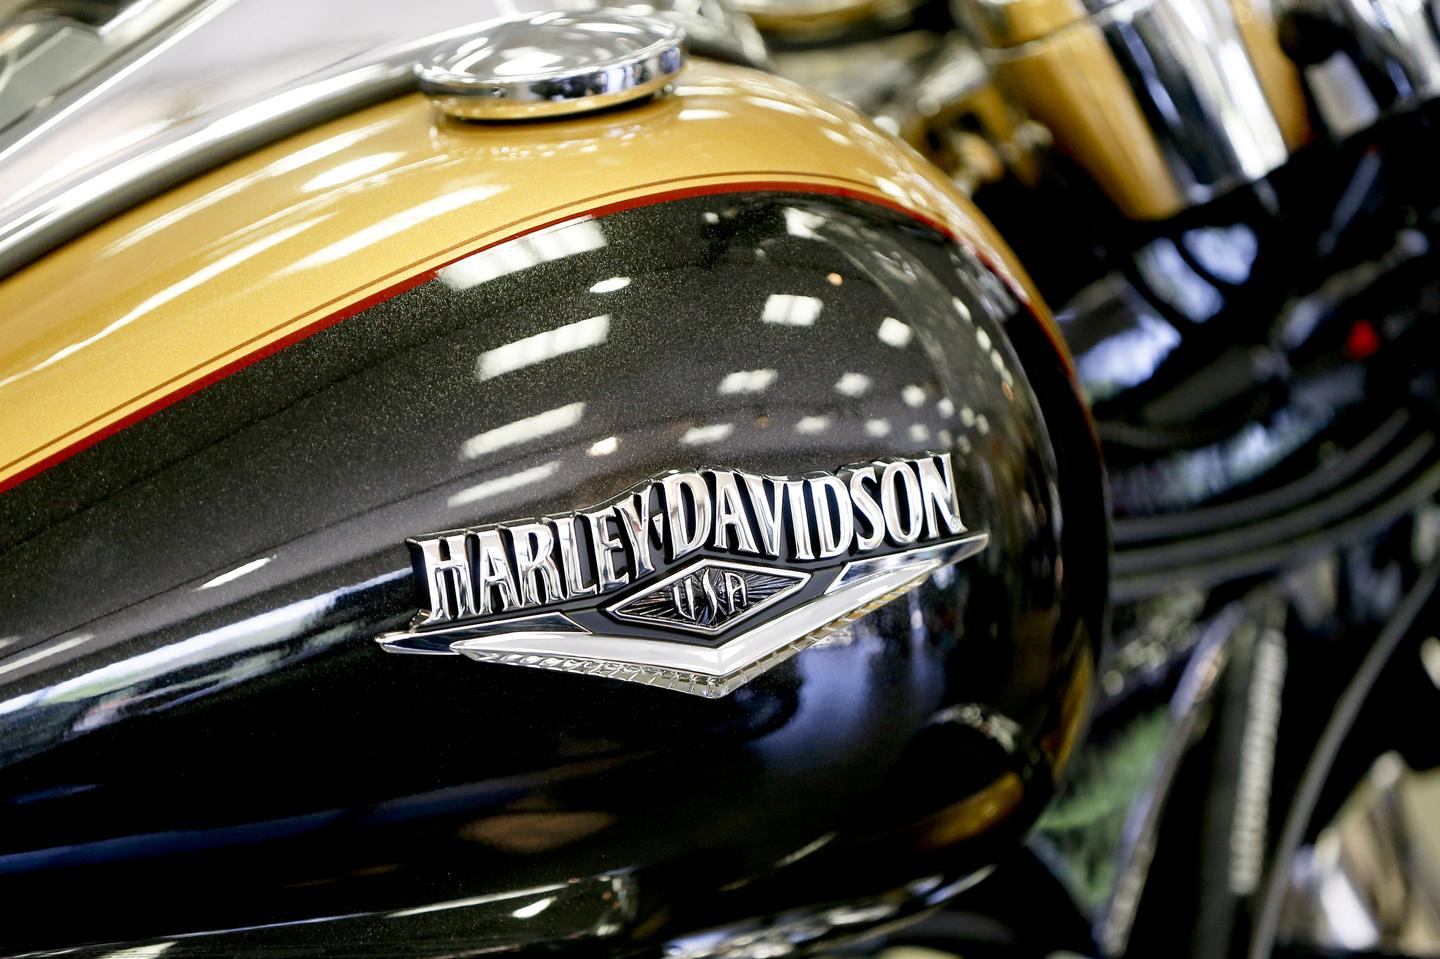 Harley-Davidson Is a Reminder That Protectionists Just Dig Holes